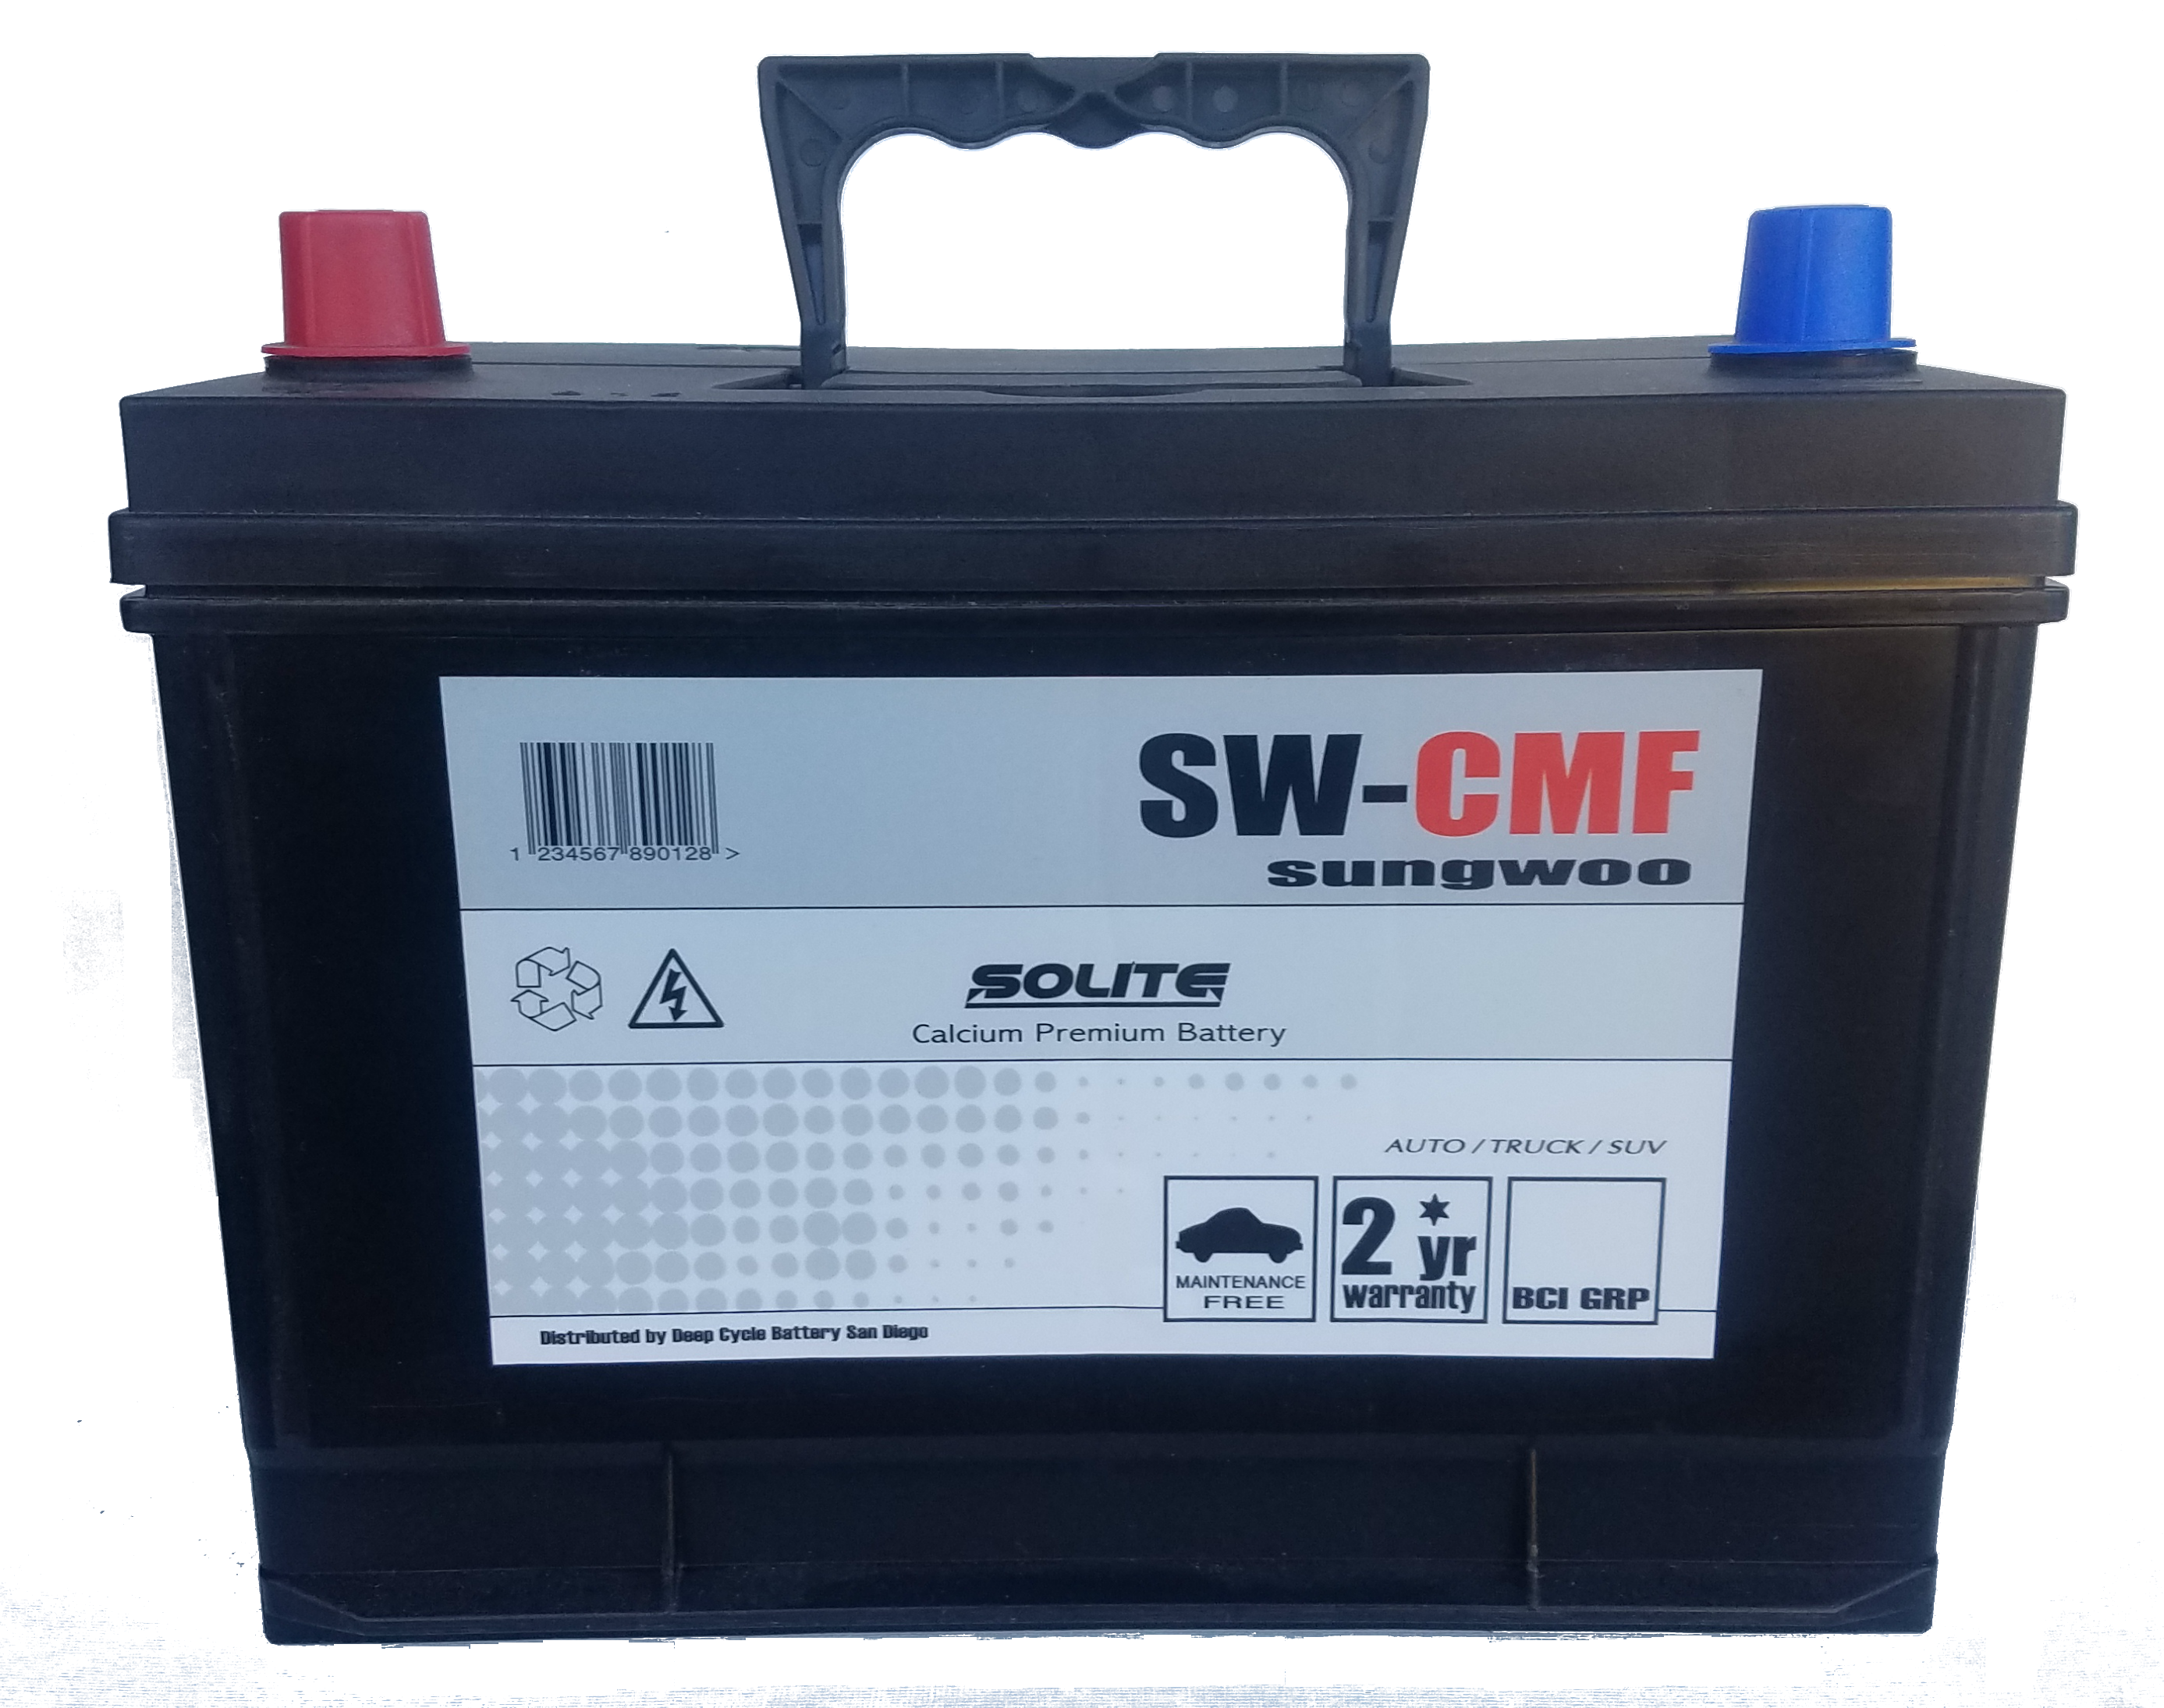 Good Car Battery Solite Is An Affordable For Cars And Trucks Are Manufactured By Hyundai With A Two Year Warranty